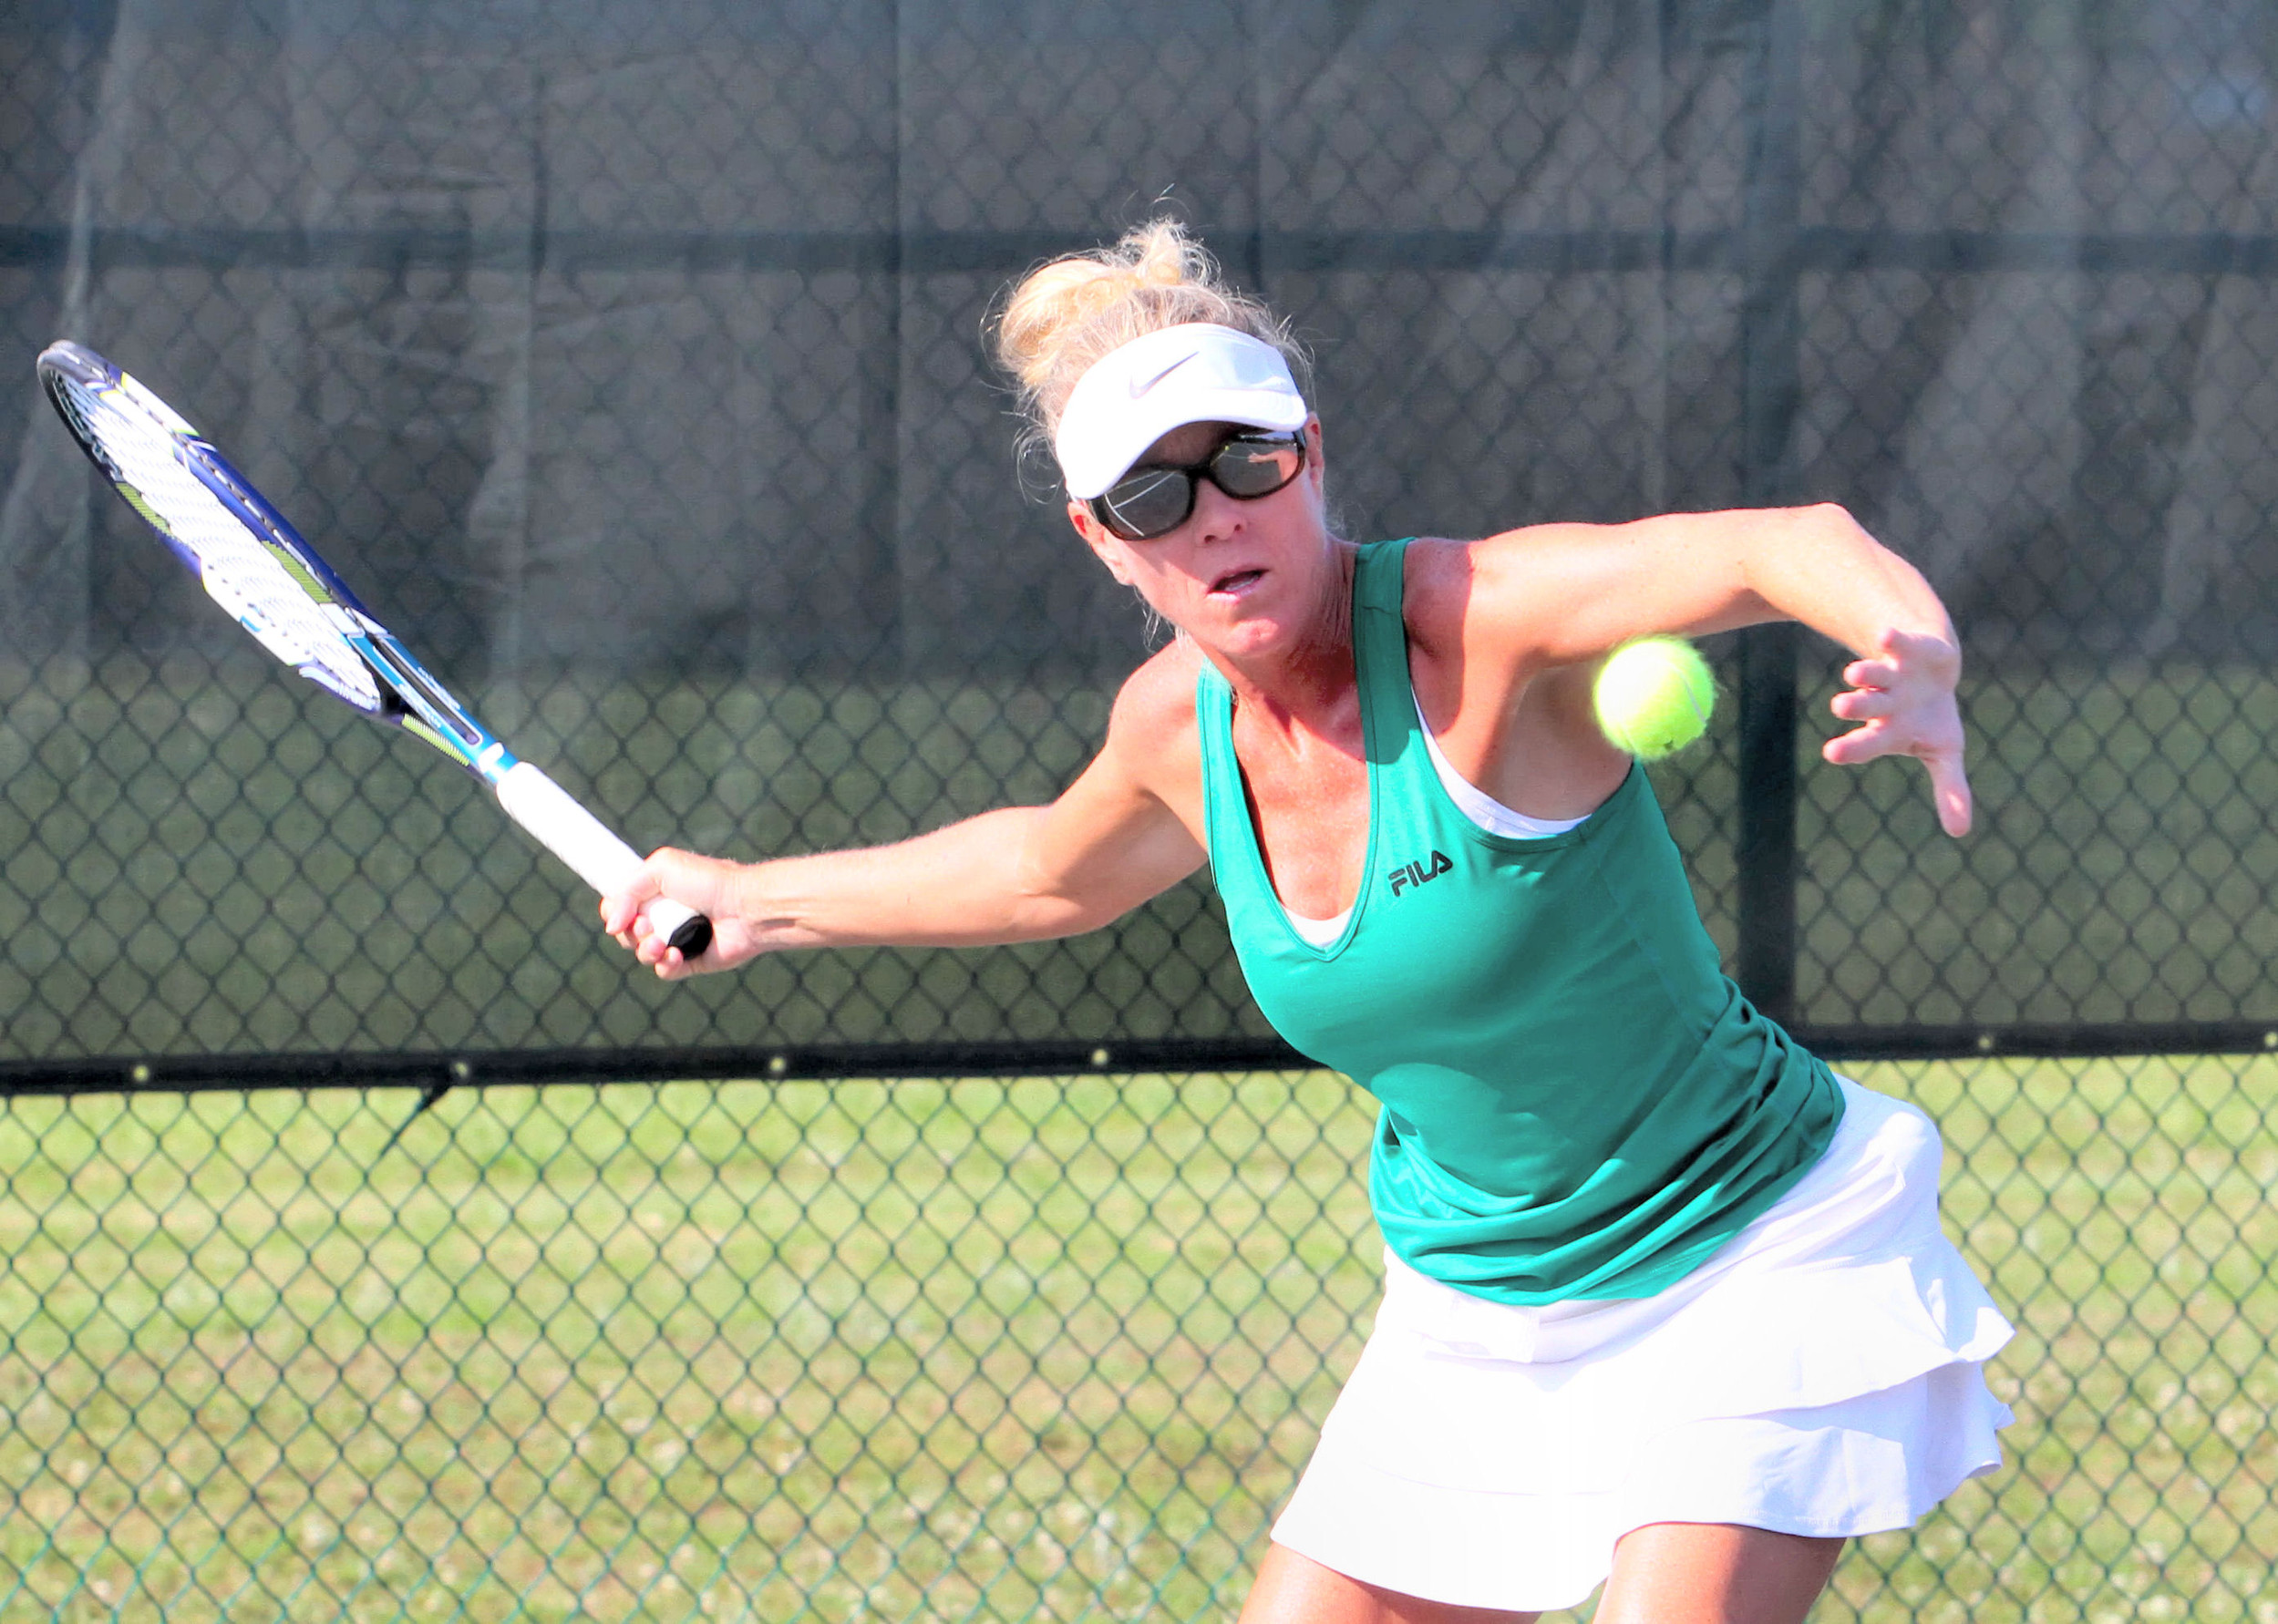 The Mike Ford Tennis Center hosted the Southern Senior USTA 300 tourney May 17-20.